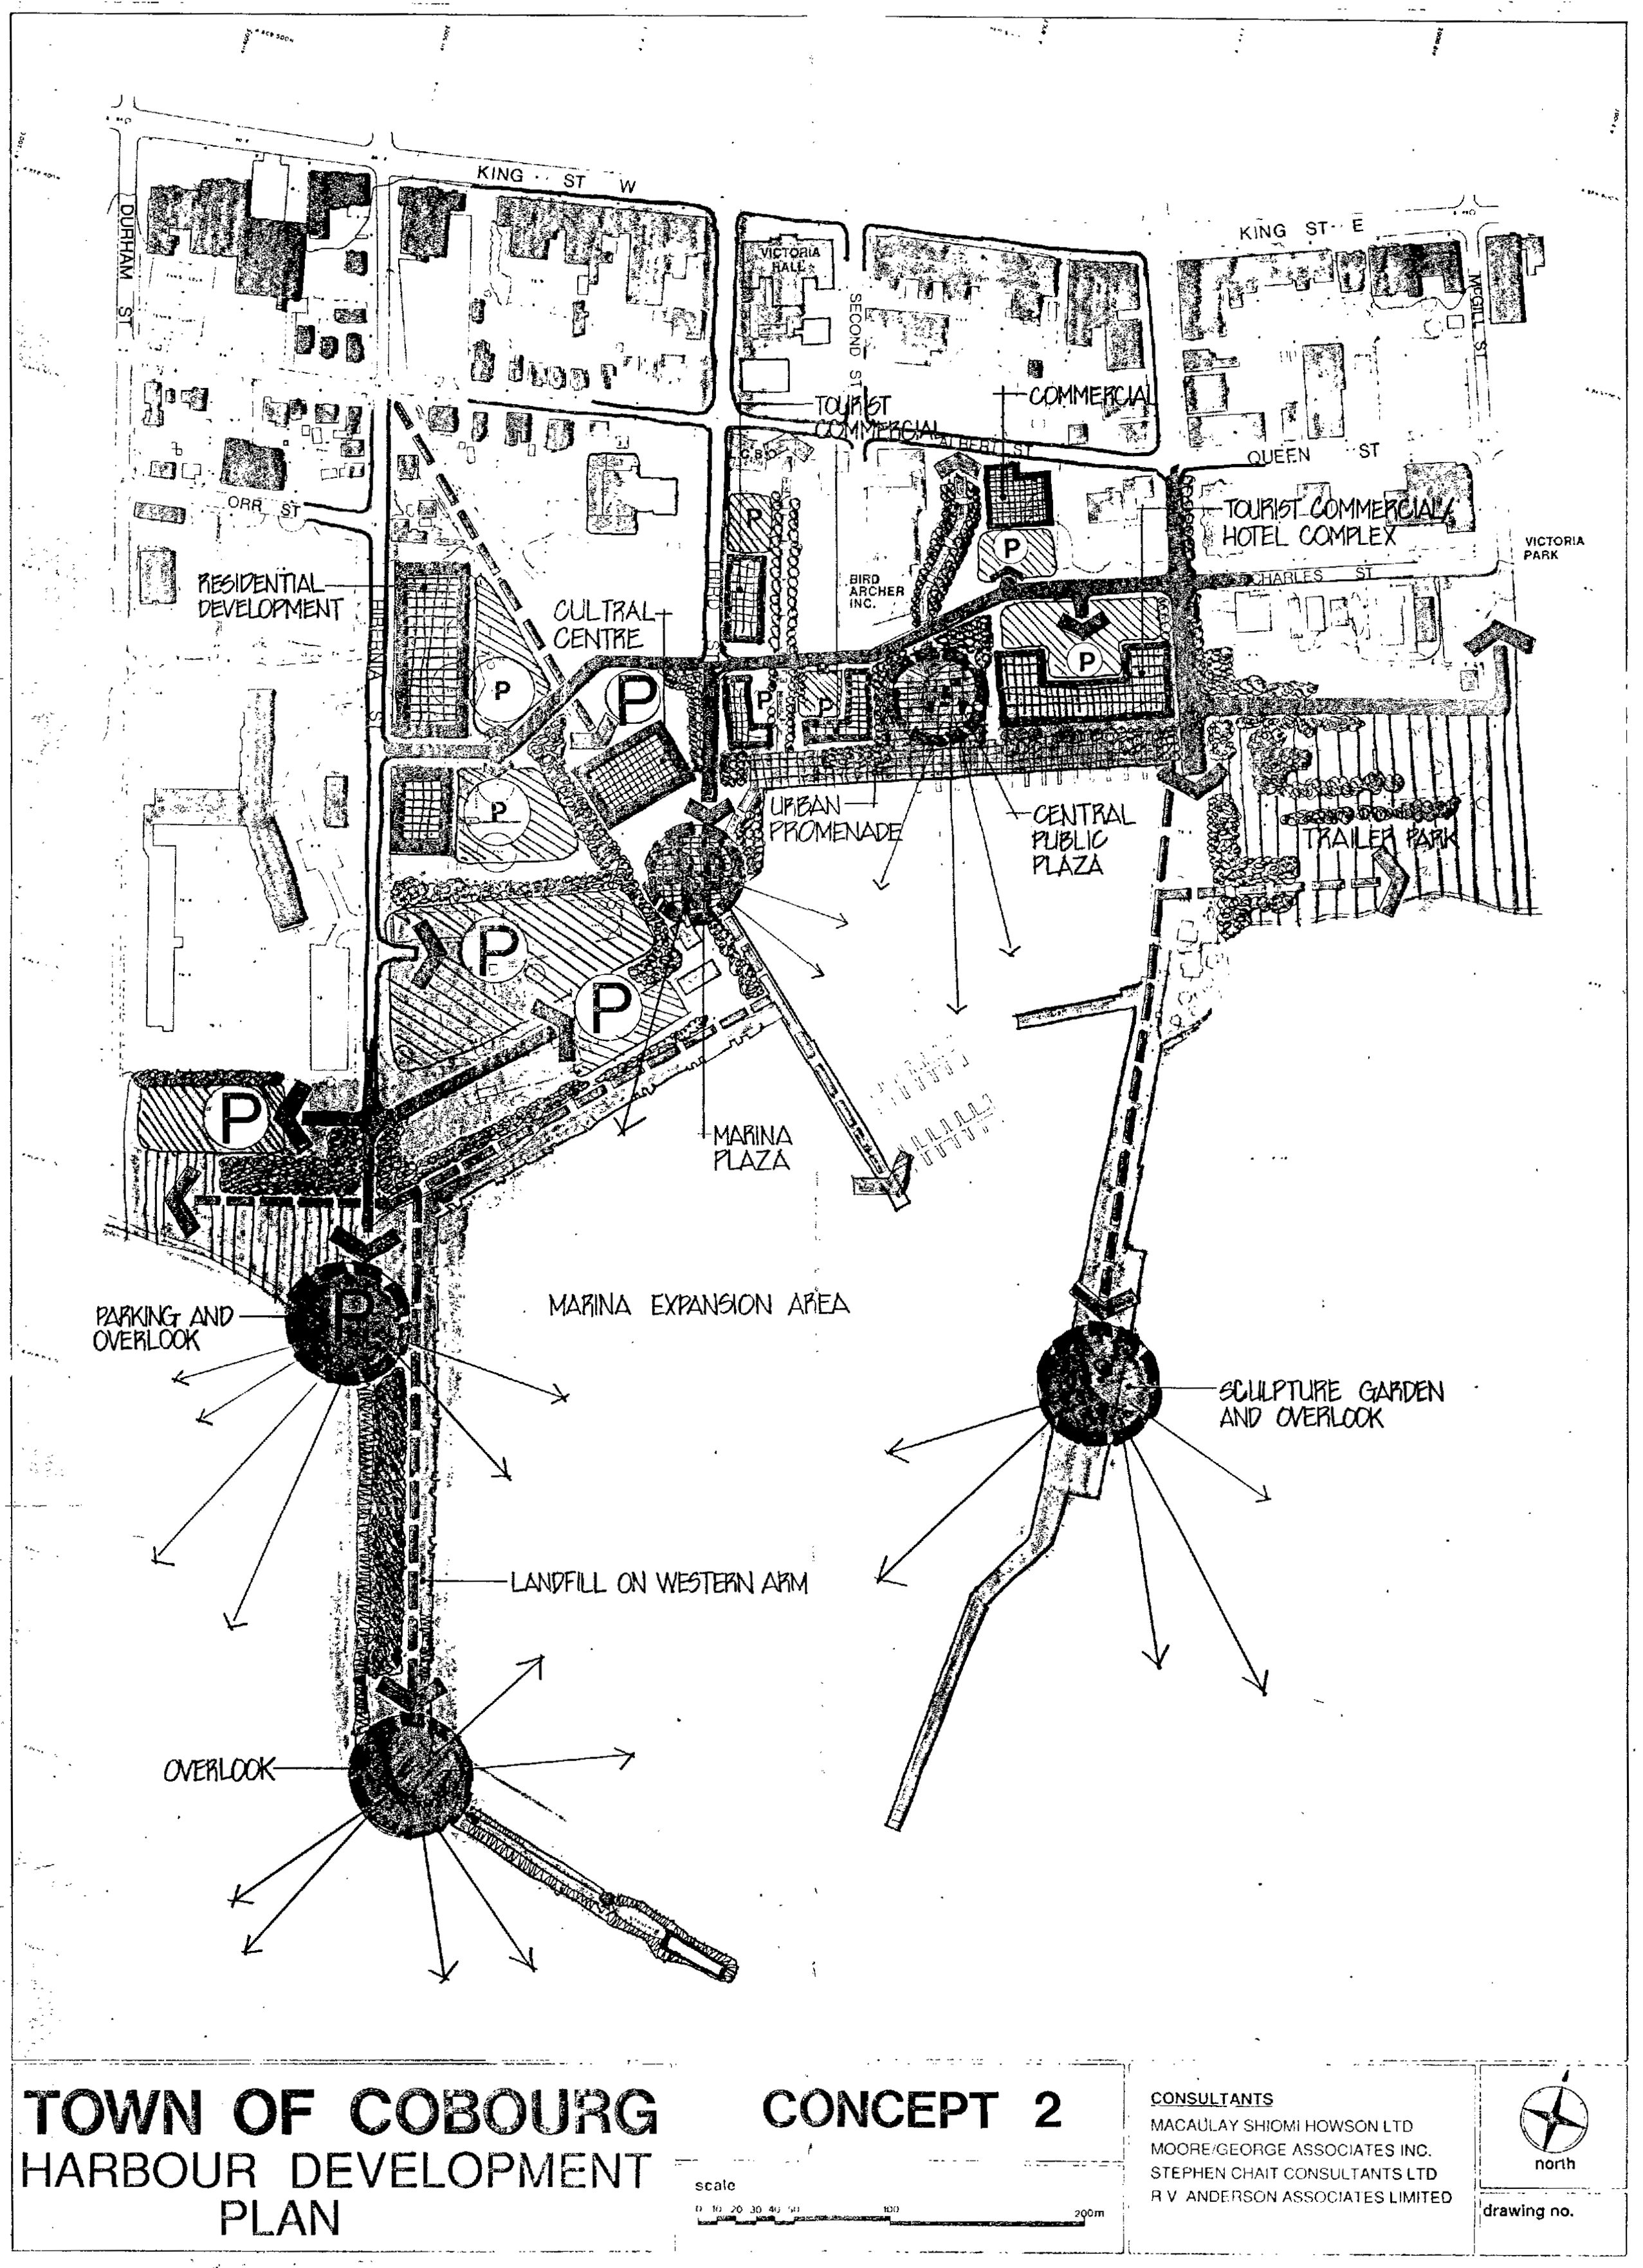 black and white Town of Cobourg Harbour Development Plan including lookouts near the end of two main piers, a sculpture garden on the east pier and a hotel complex north of the trailer park